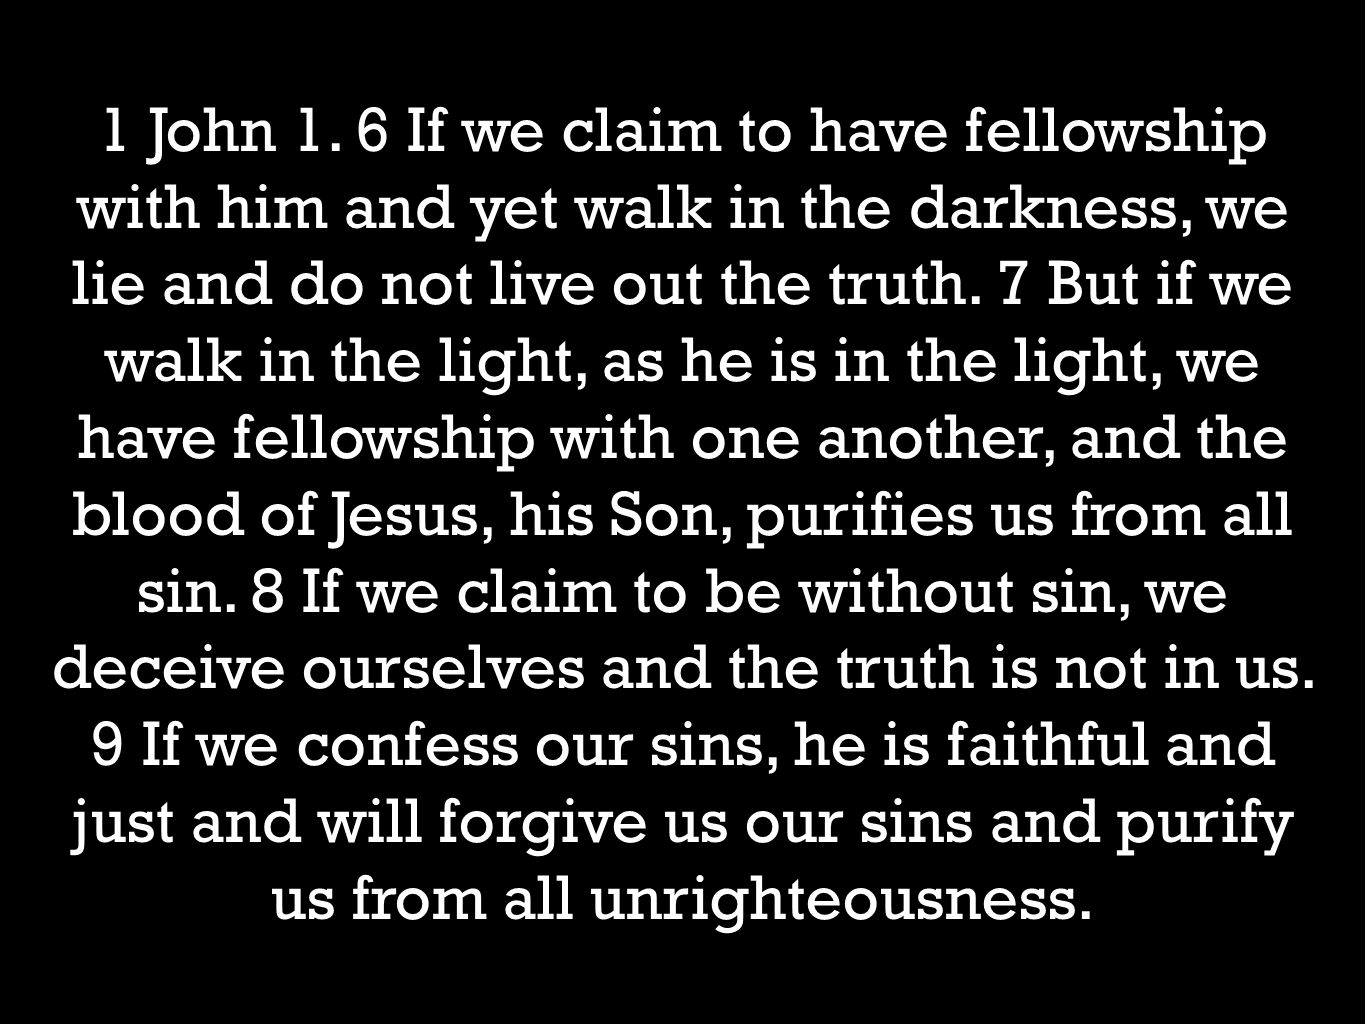 1 John 1. 6 If we claim to have fellowship with him and yet walk in the darkness, we lie and do not live out the truth. 7 But if we walk in the light,